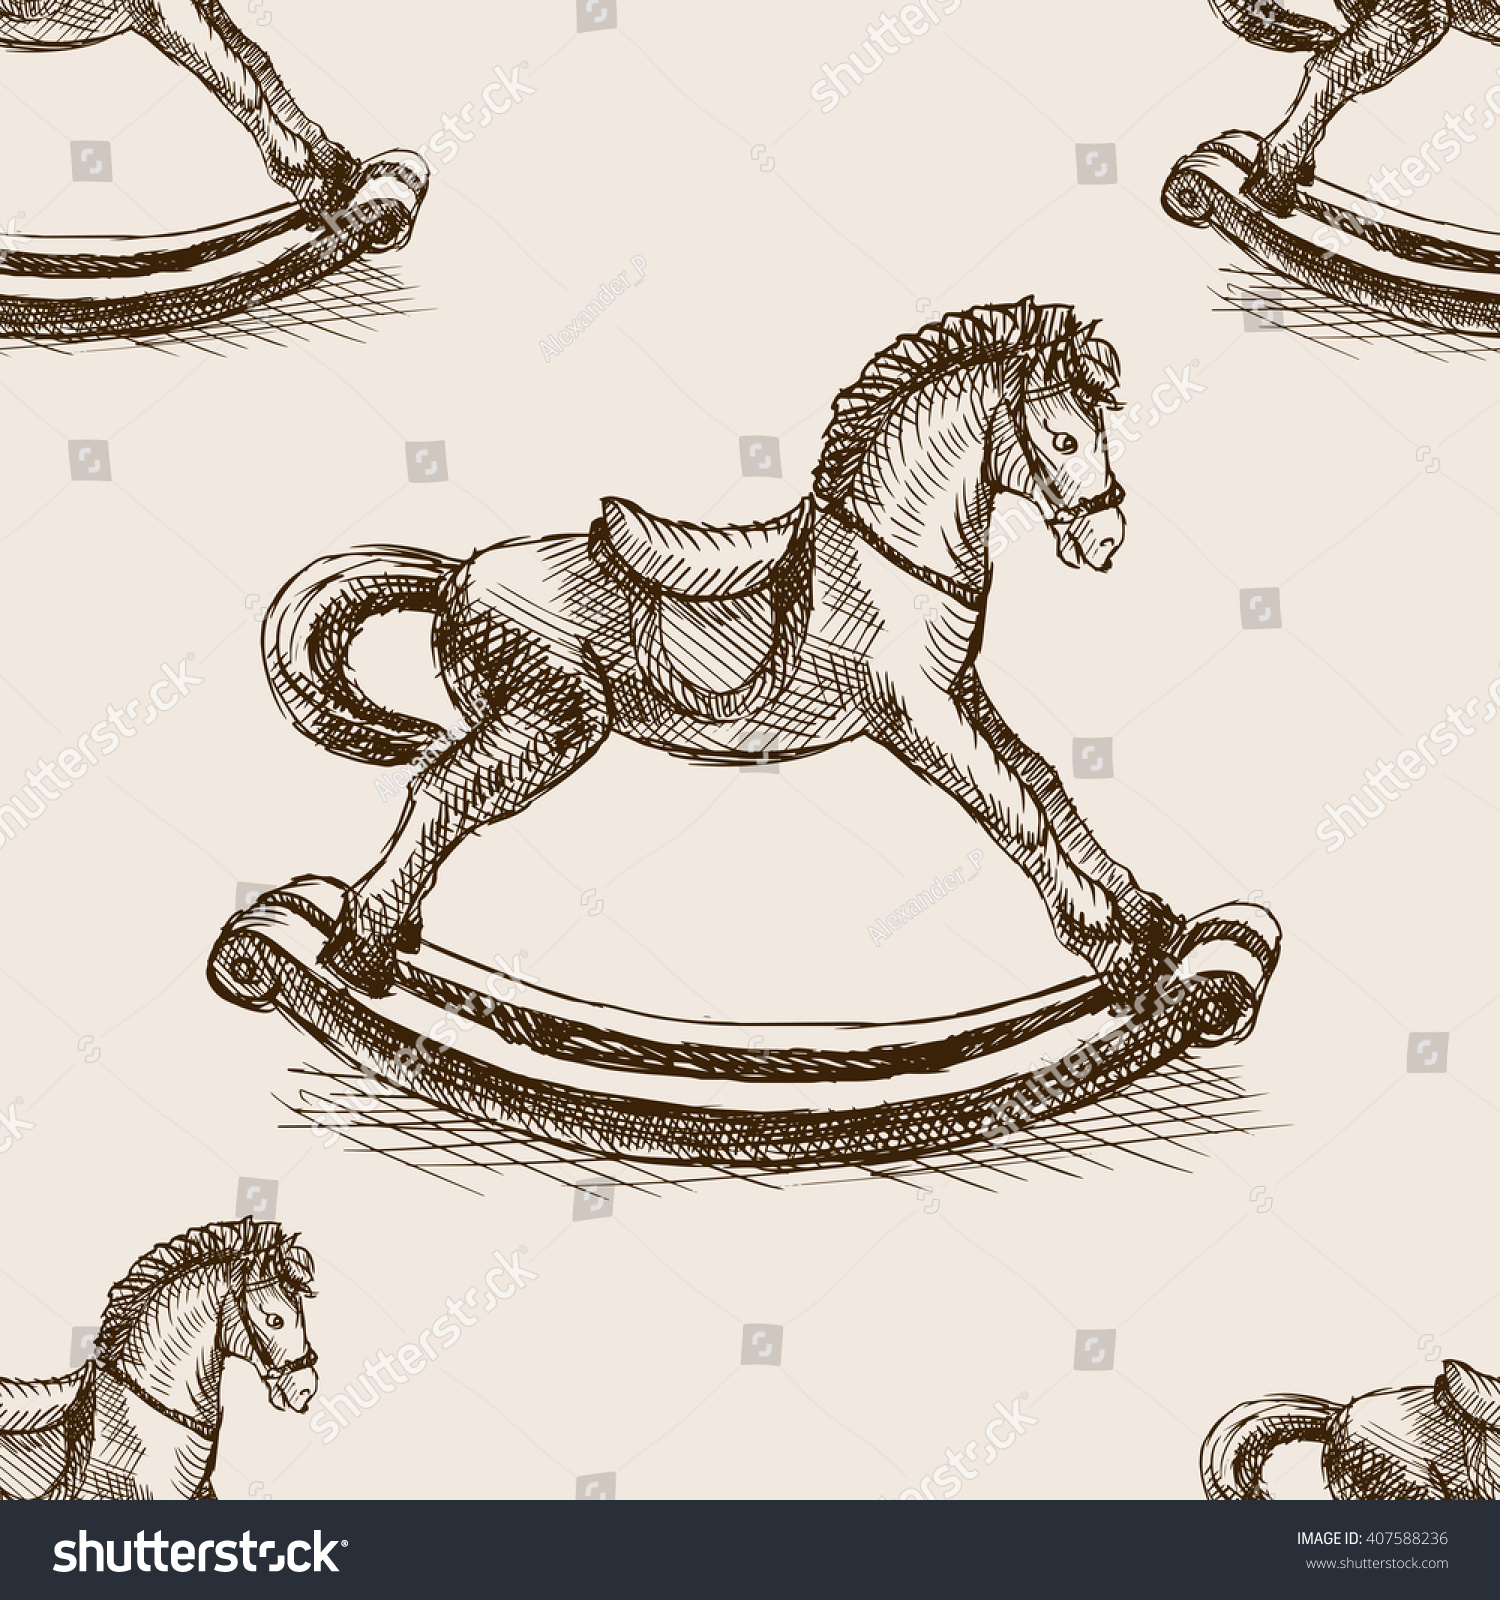 Vintage Rocking Horse Toy Sketch Style Stock Vector Royalty Free 407588236